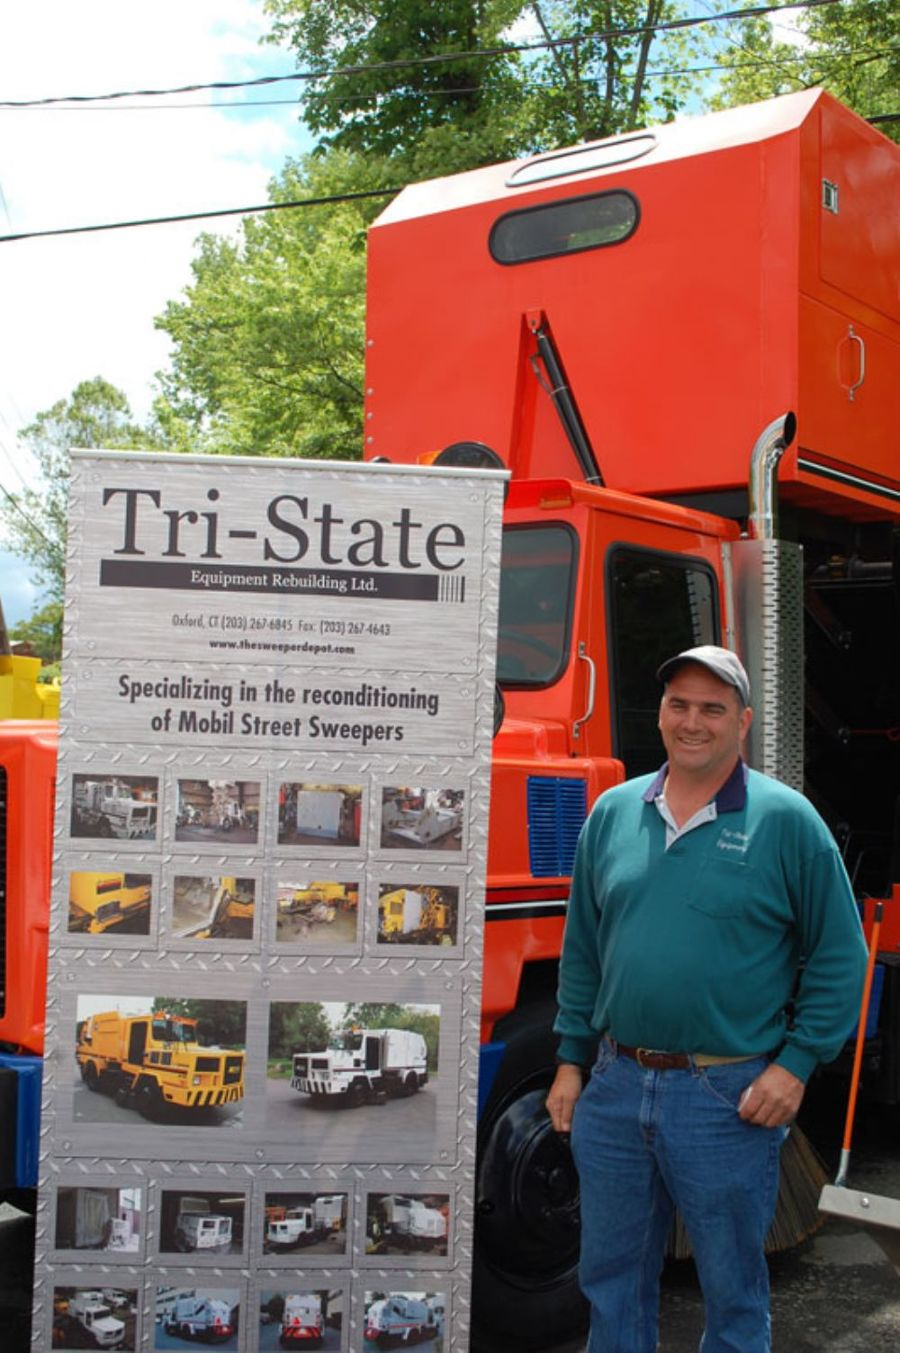 Tri-State Equipment Rebuilding Ltd. specializes in reconditioning Mobil street sweepers at its facility in Oxford, Conn.  Pictured here is David Dubbioso, president of Tri-State Equipment Rebuilding Ltd.